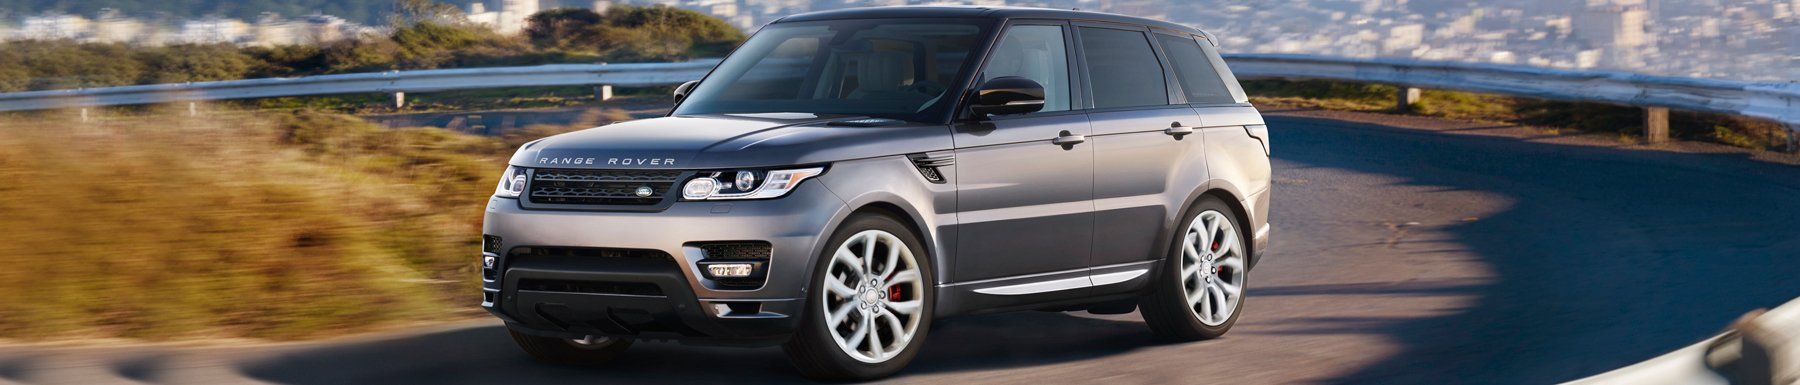 Land Rover - Range Rover driving down the road